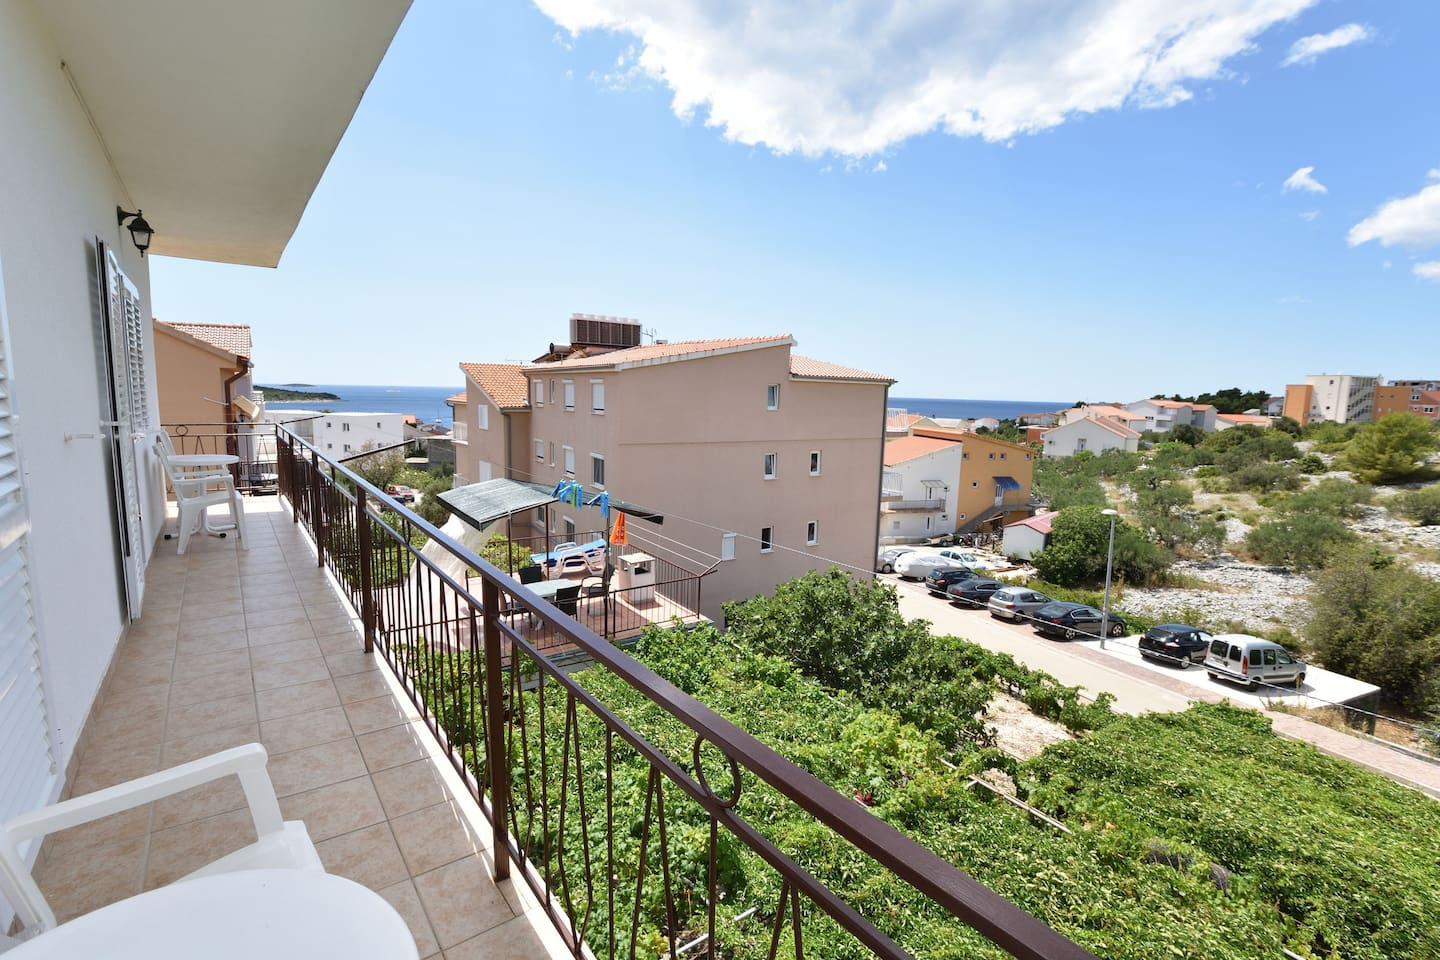 Balcony View from the accommodation